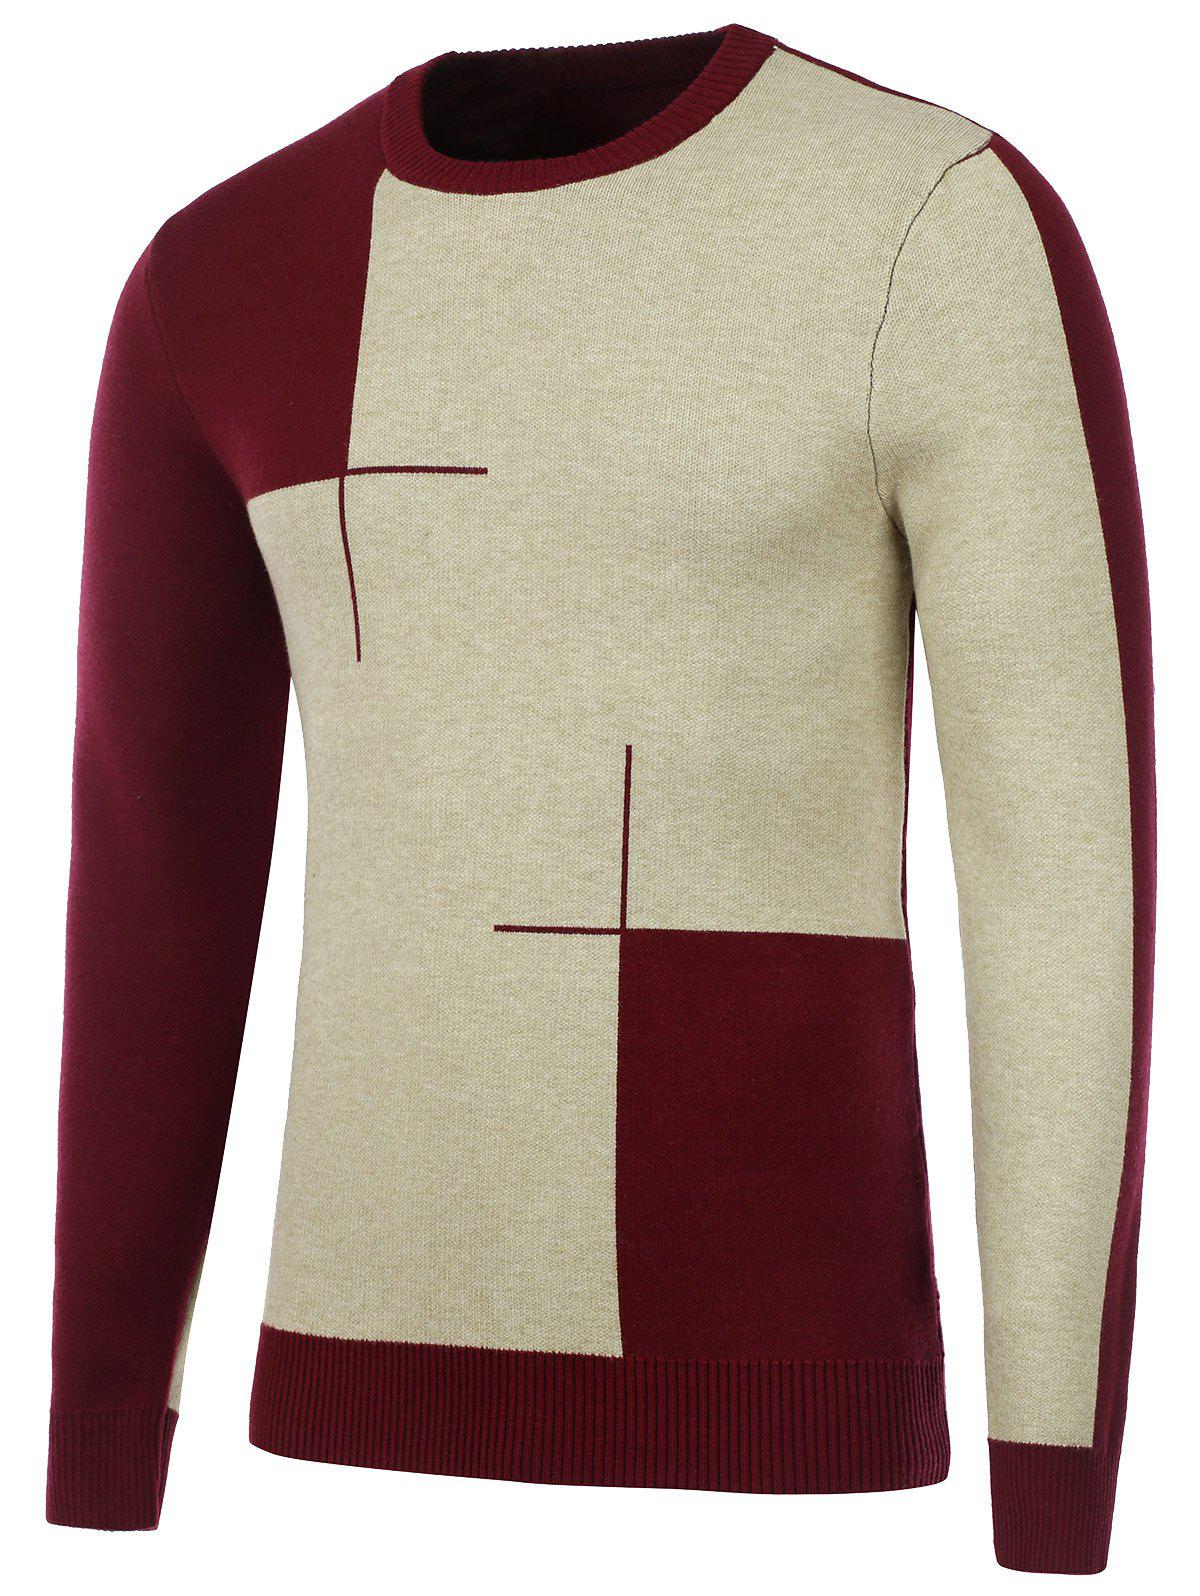 Two Tone Crew Neck Knitted Sweater - BURGUNDY M